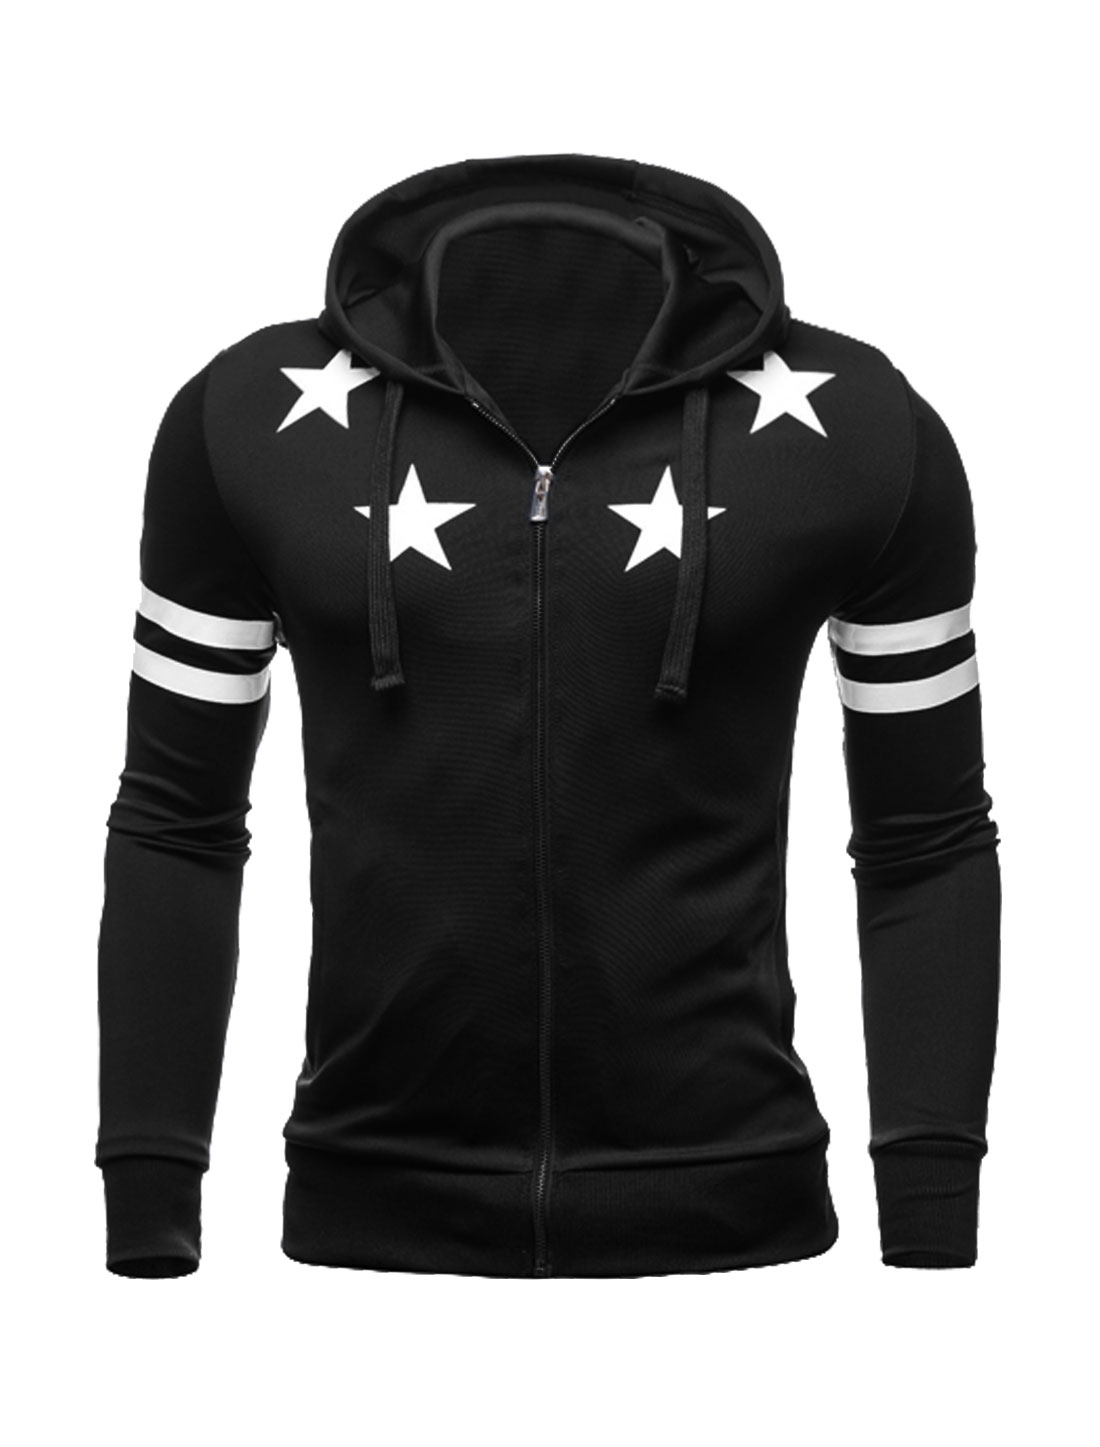 Men Zip Closed Stars Stripes Slim Fit Hooded Jacket Black M